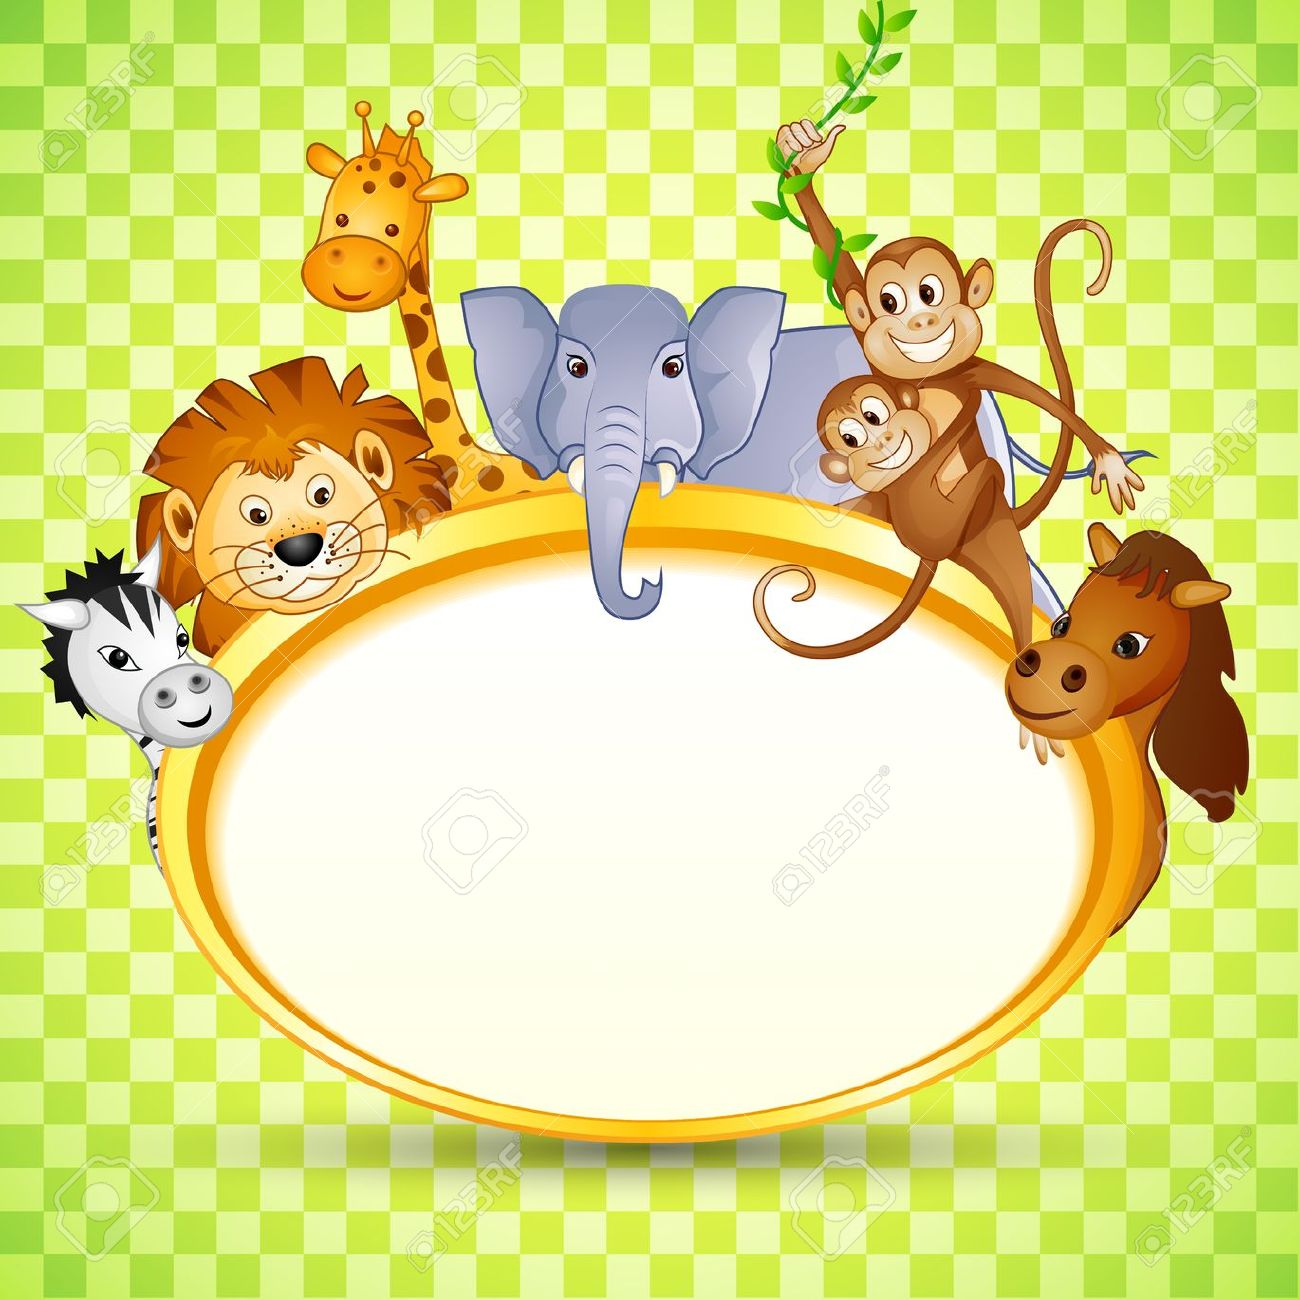 Animal in Baby Shower Invitation Stock Photo - 19259002